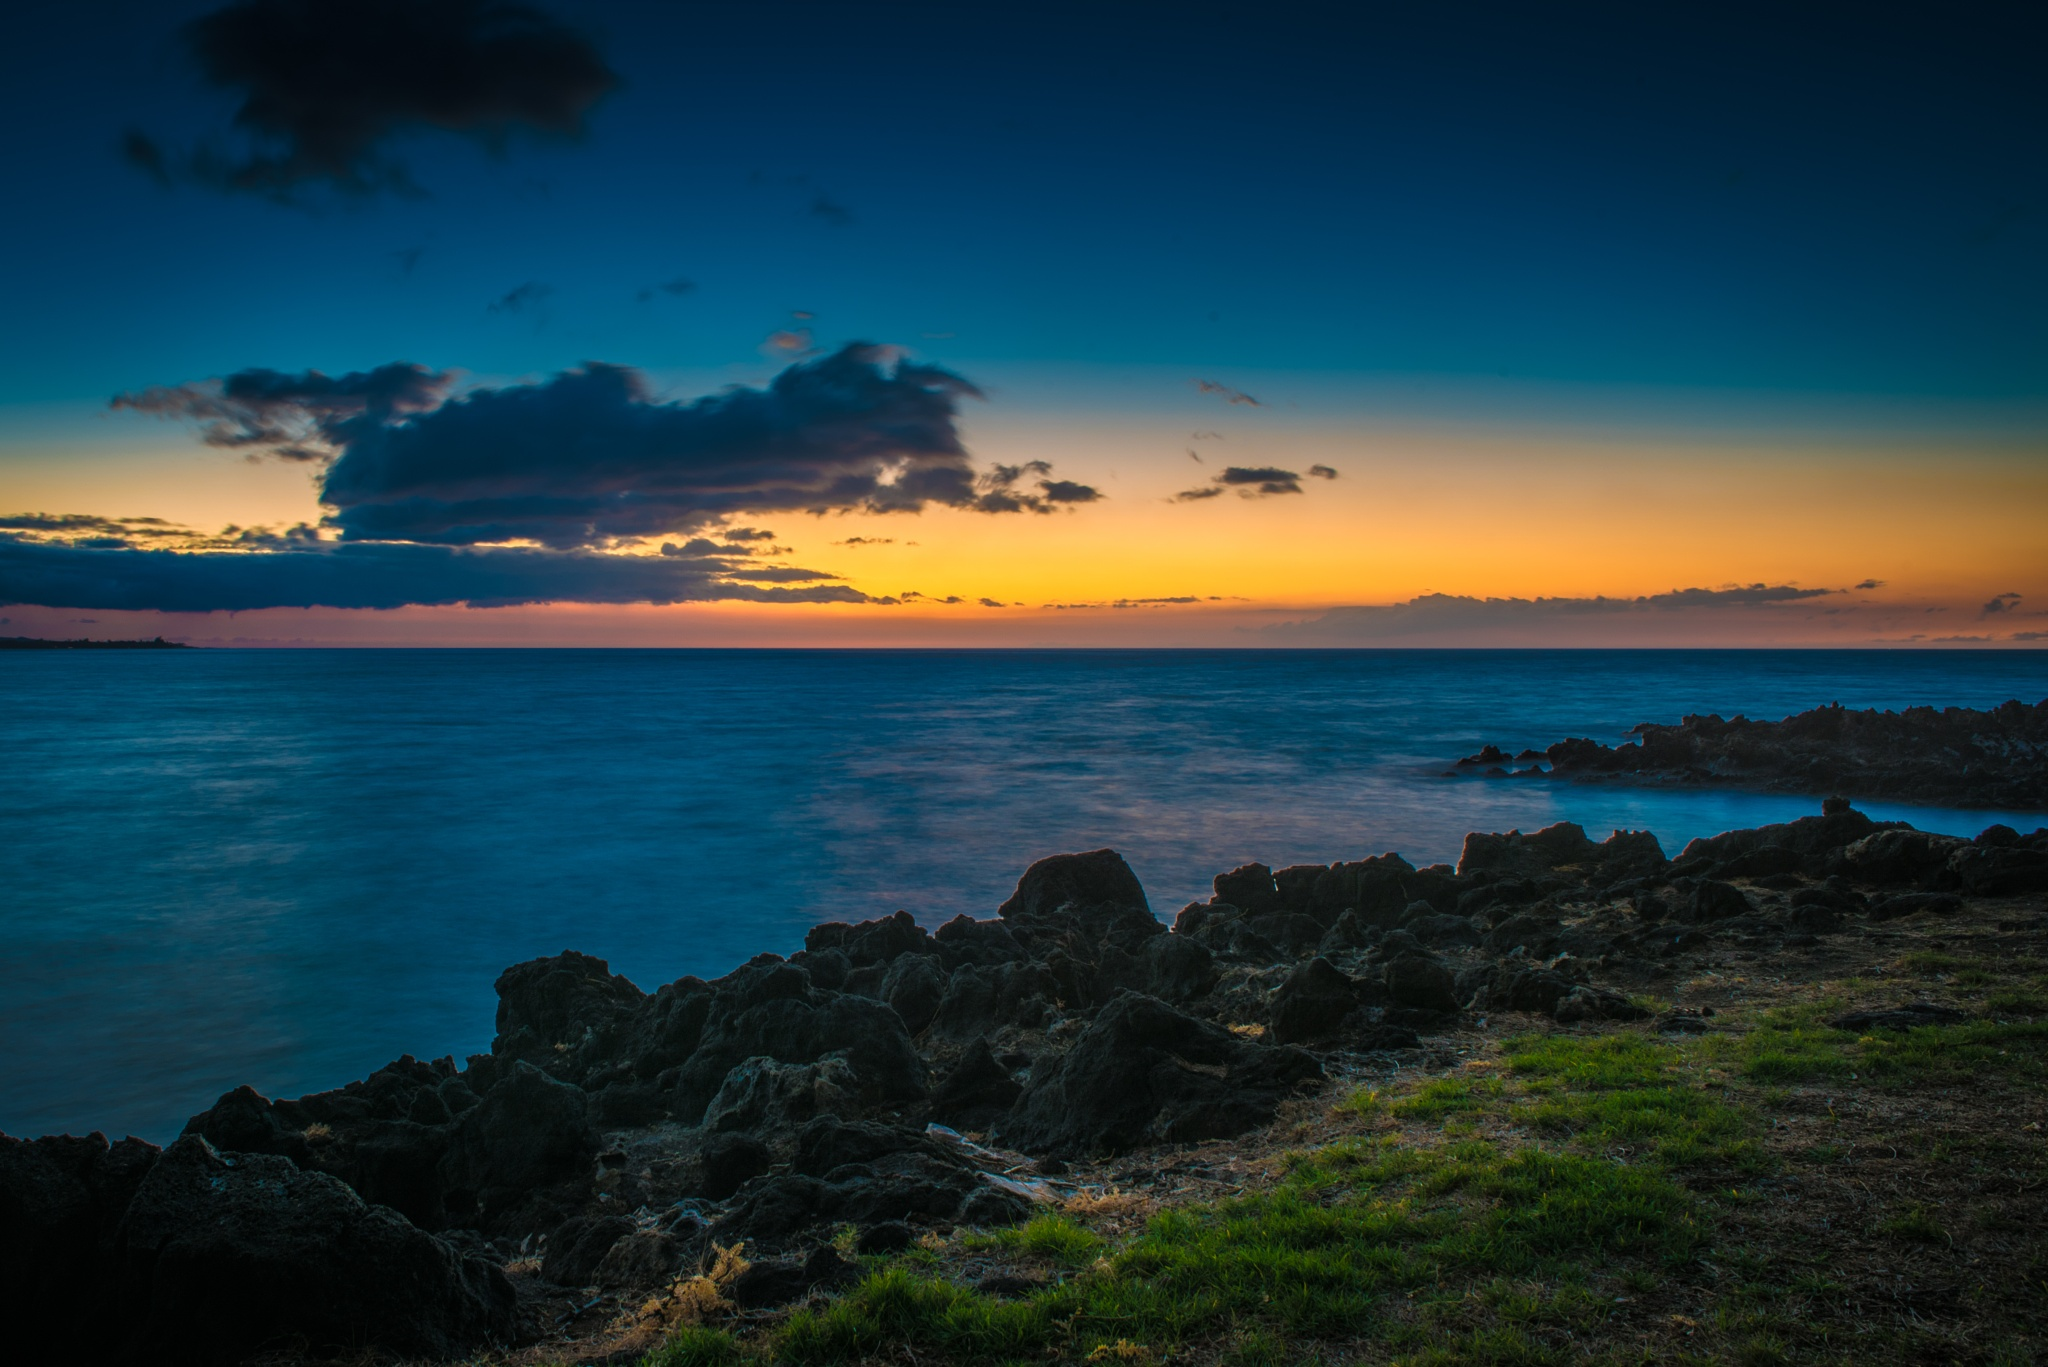 After the Sunset by Kevin Drew Davis